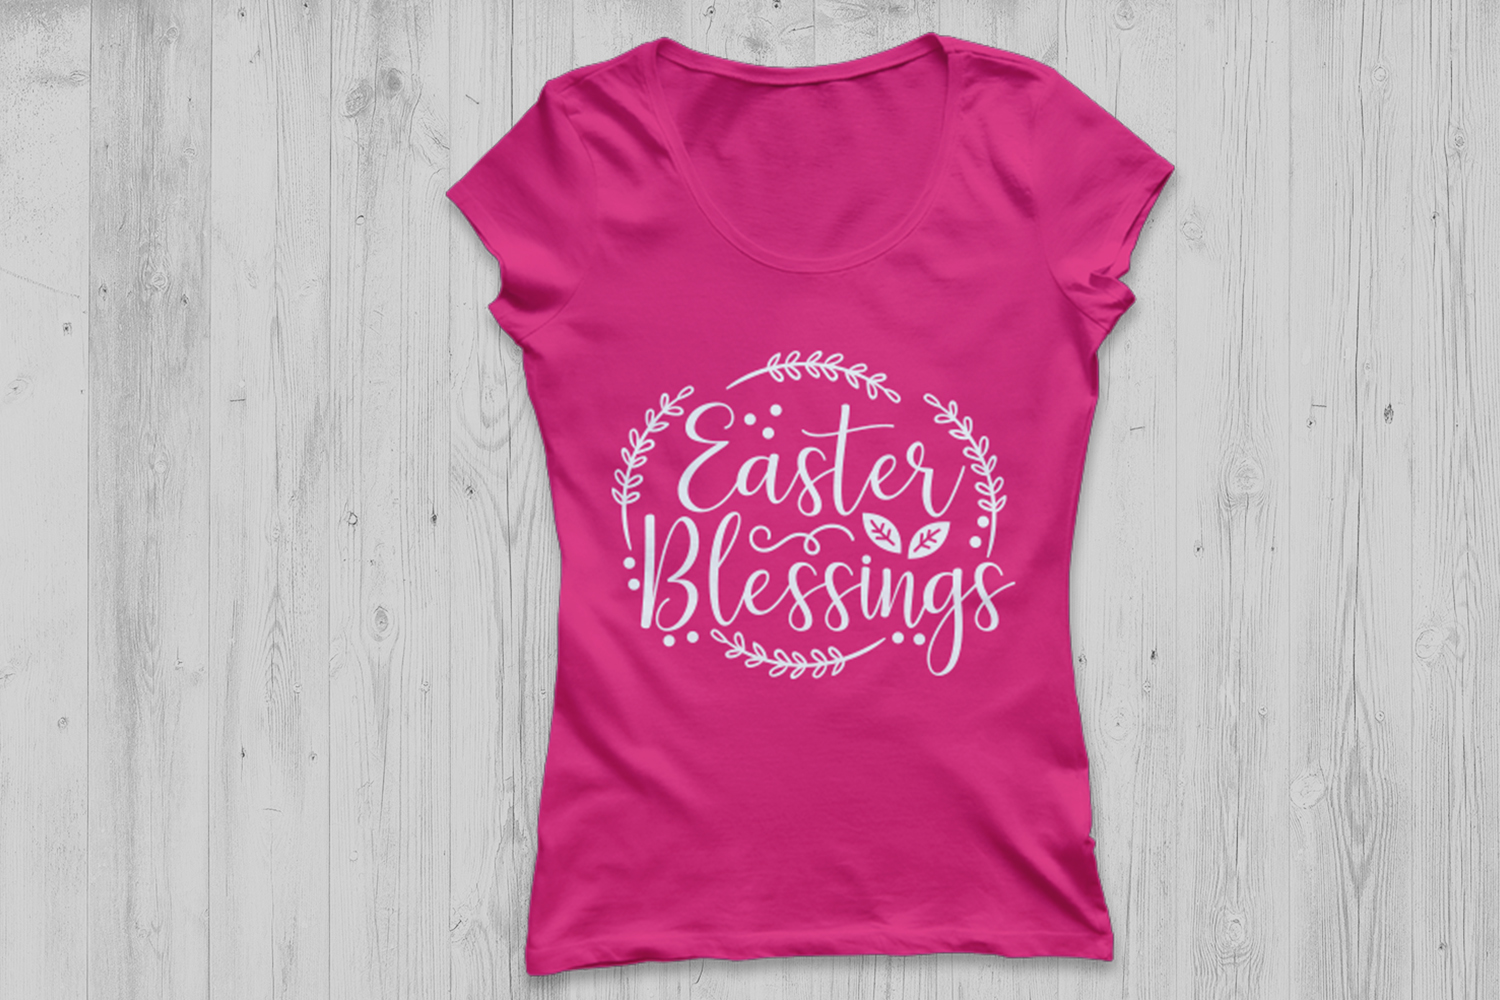 Easter Blessings Svg, Easter Svg, Christian Easter Svg. example image 2